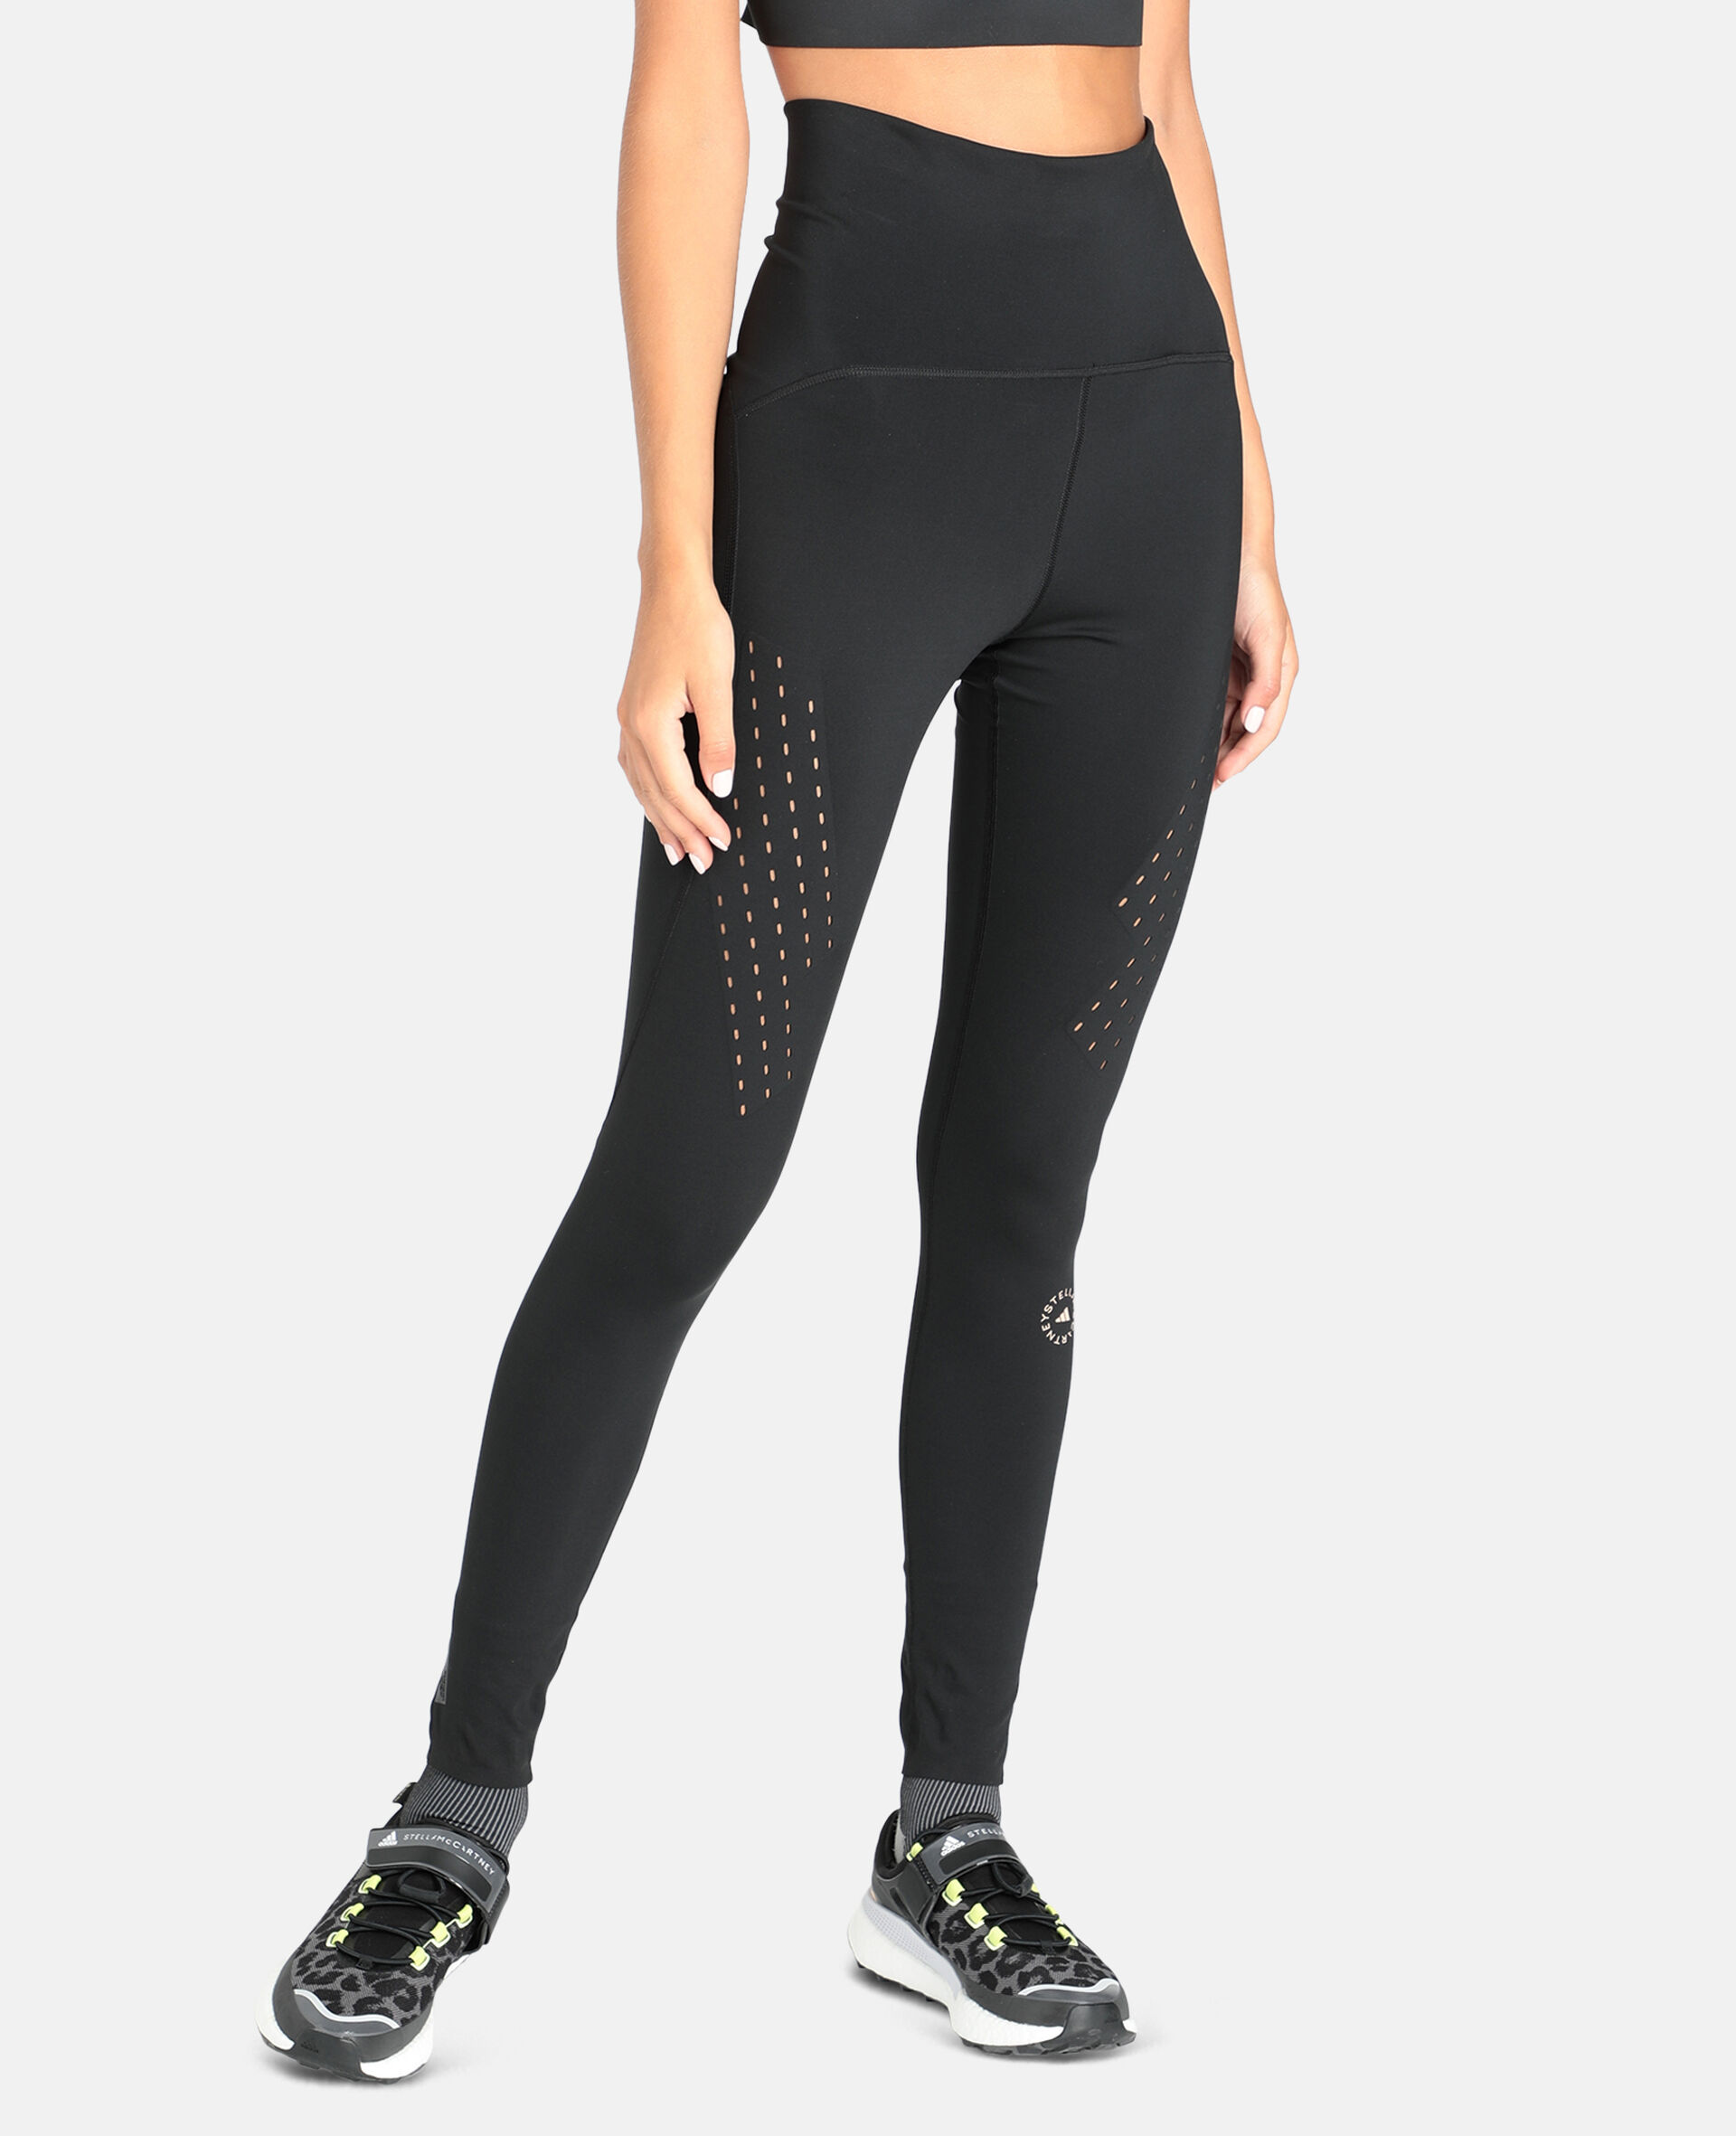 Black TruePurpose Training Tights-Black-large image number 4